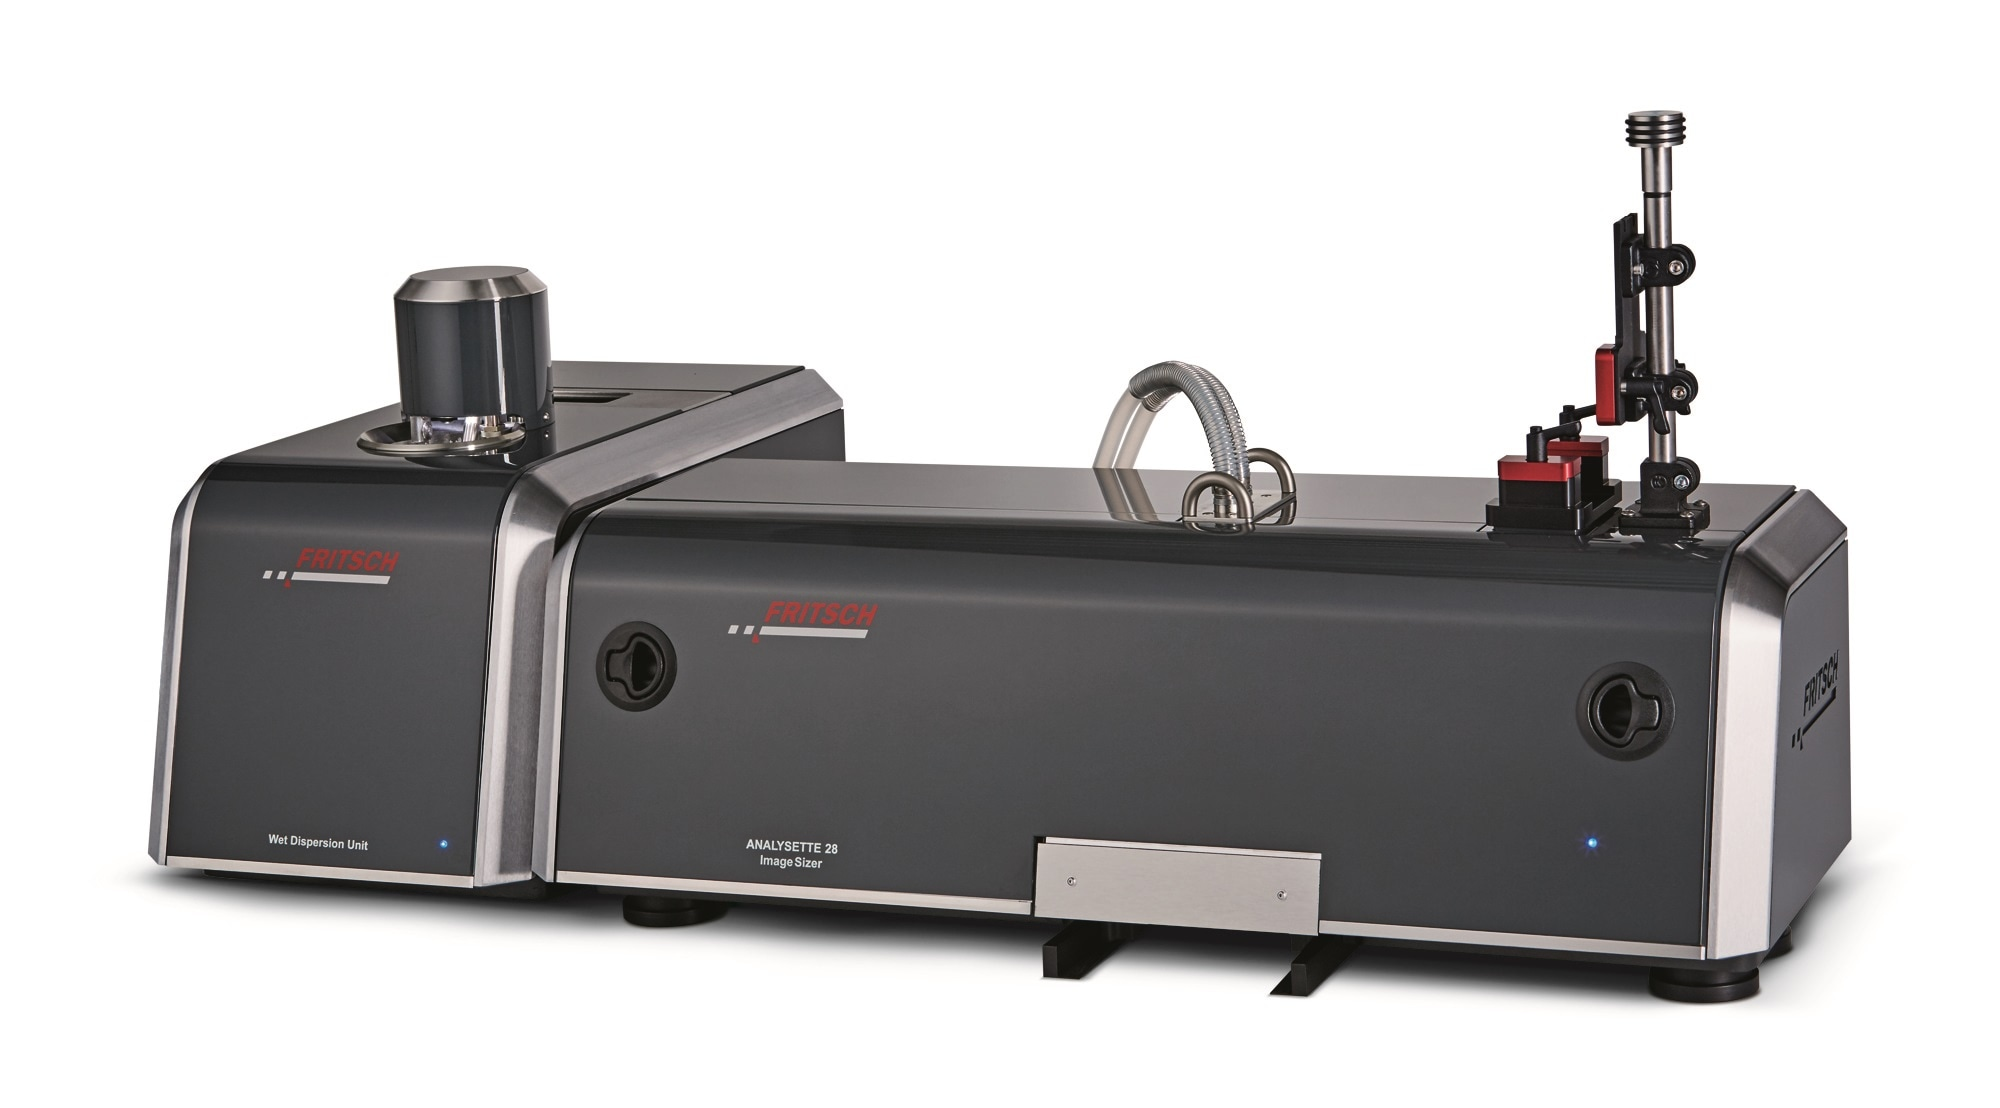 Particle Sizer ANALYSETTE 28 ImageSizer for wet measurement of suspensions and emulsions